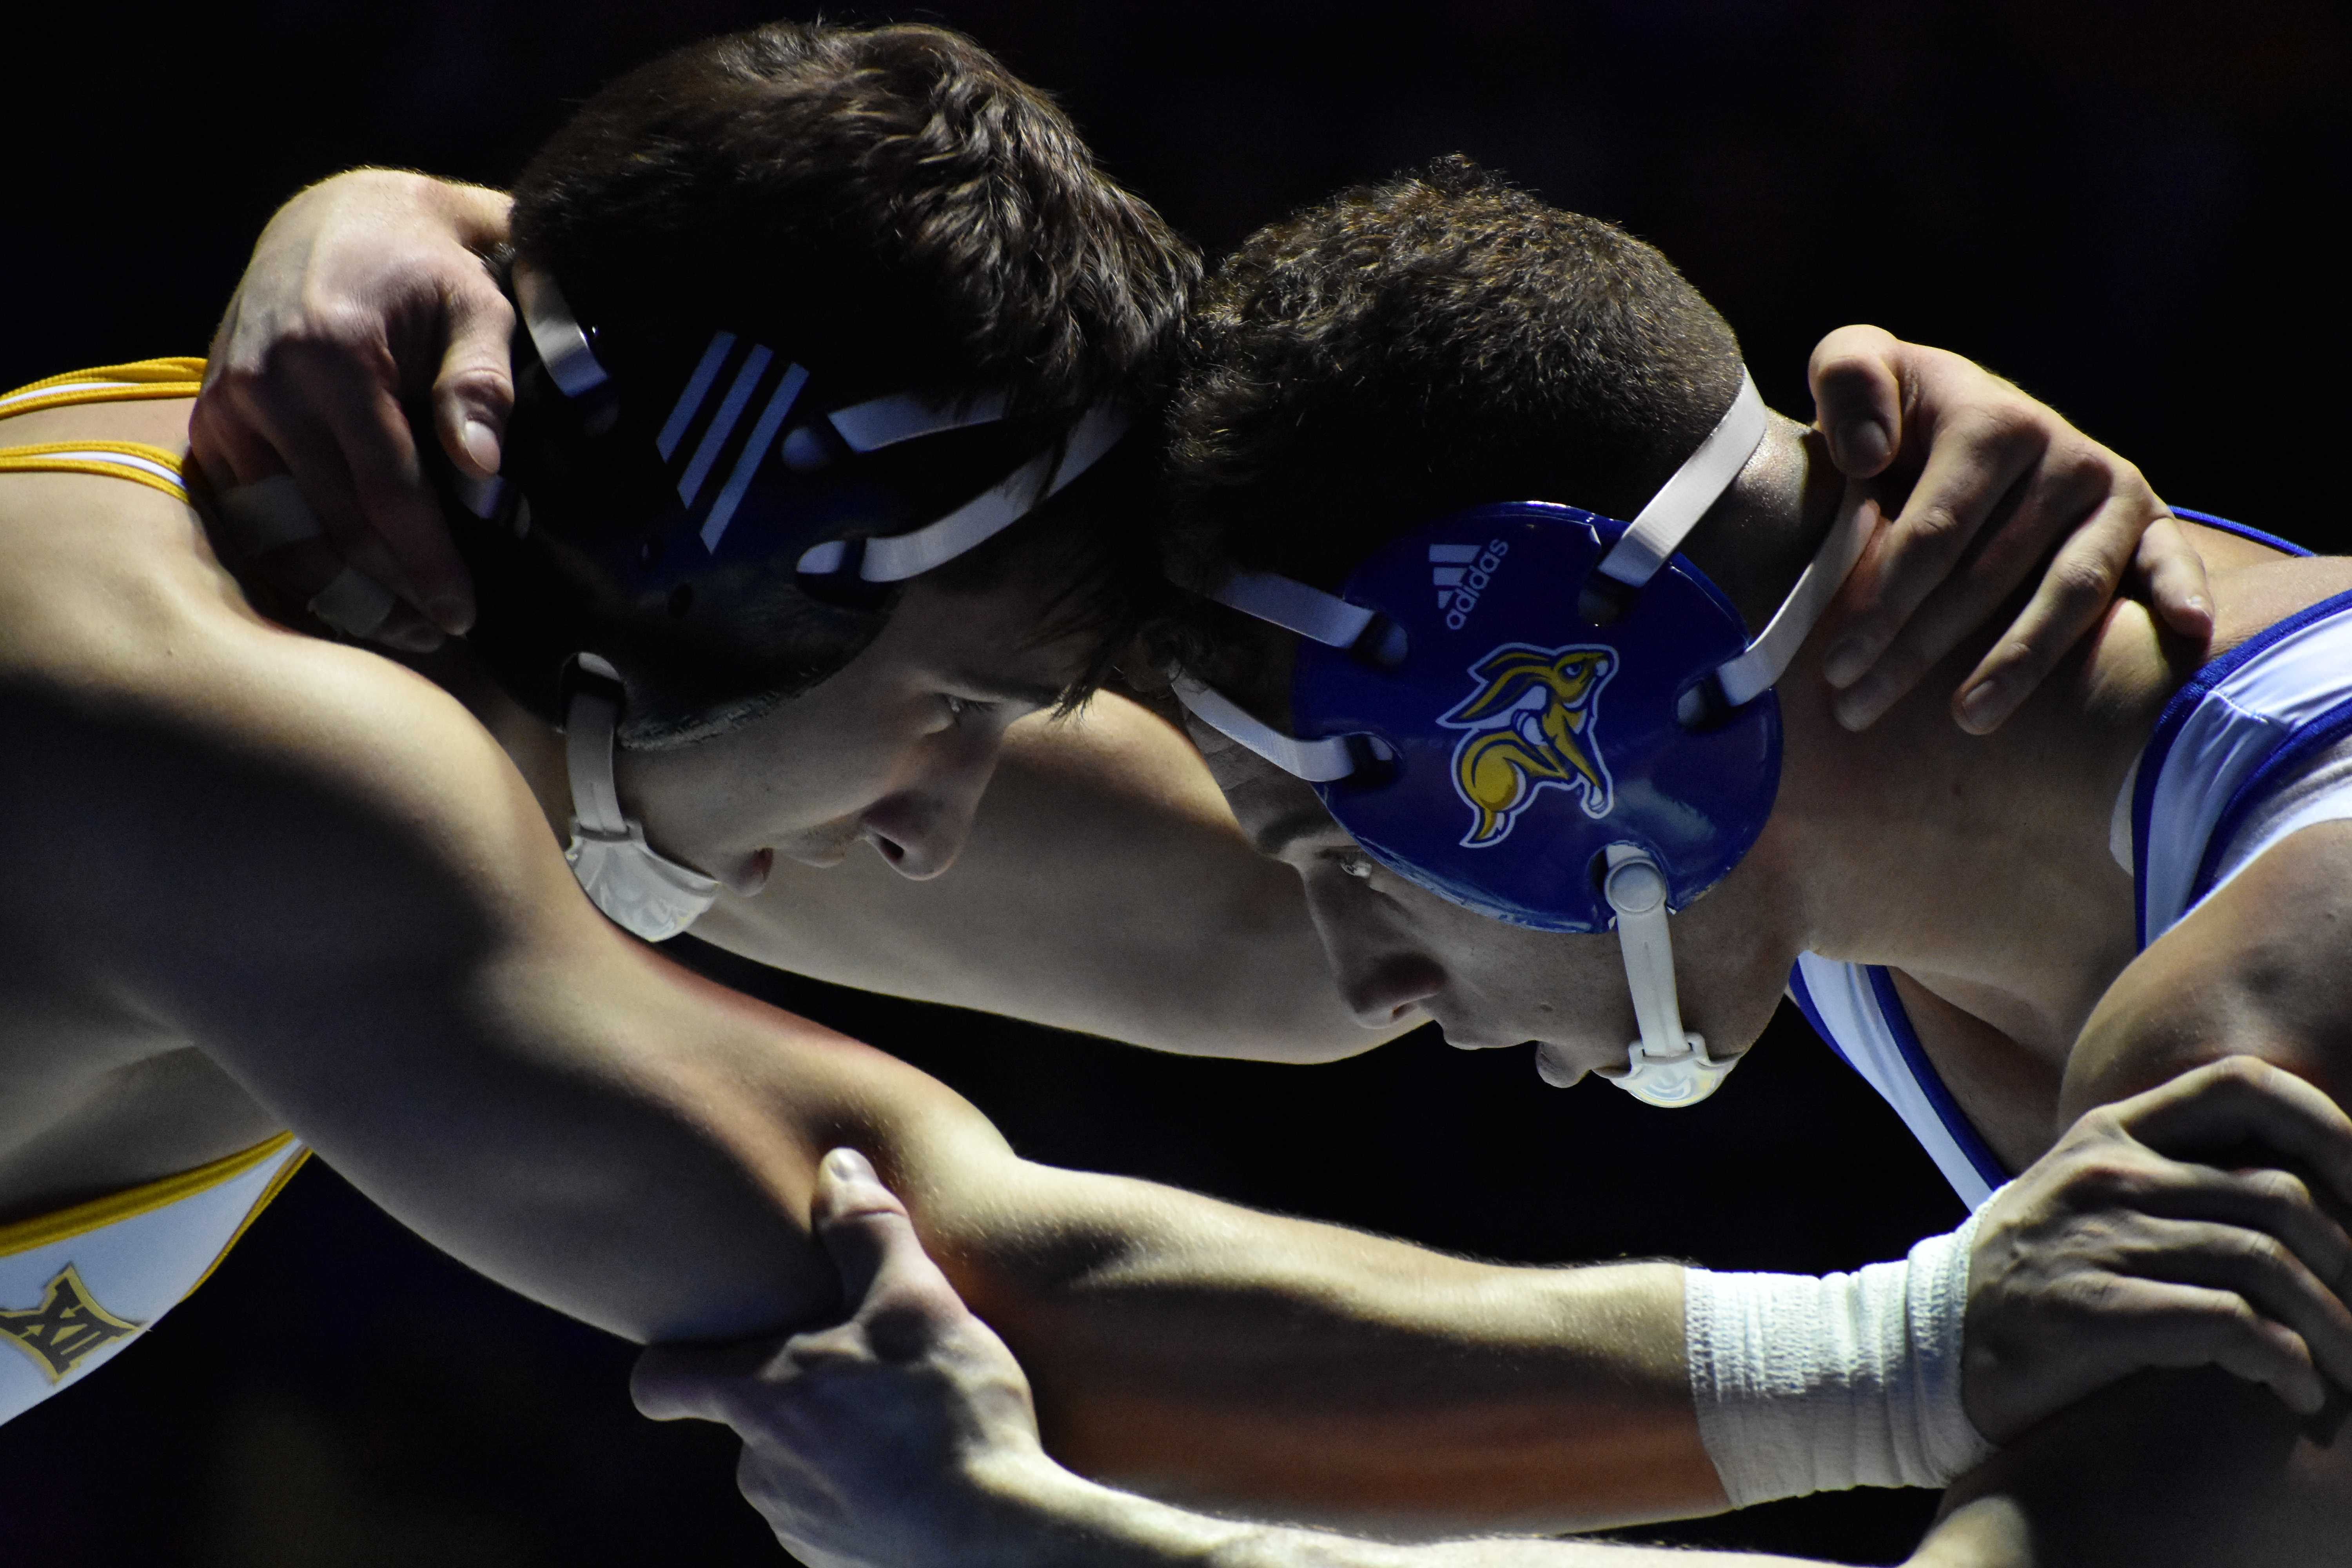 ABBY FULLENKAMP Sophomore Martin Mueller wrestles Chaz Polson during the 184-pound bout Jan. 18. Mueller defeated Polson by fall 2:49. The Jacks host Iowa State at 2pm Sunday, Feb. 4 in Frost Arena.